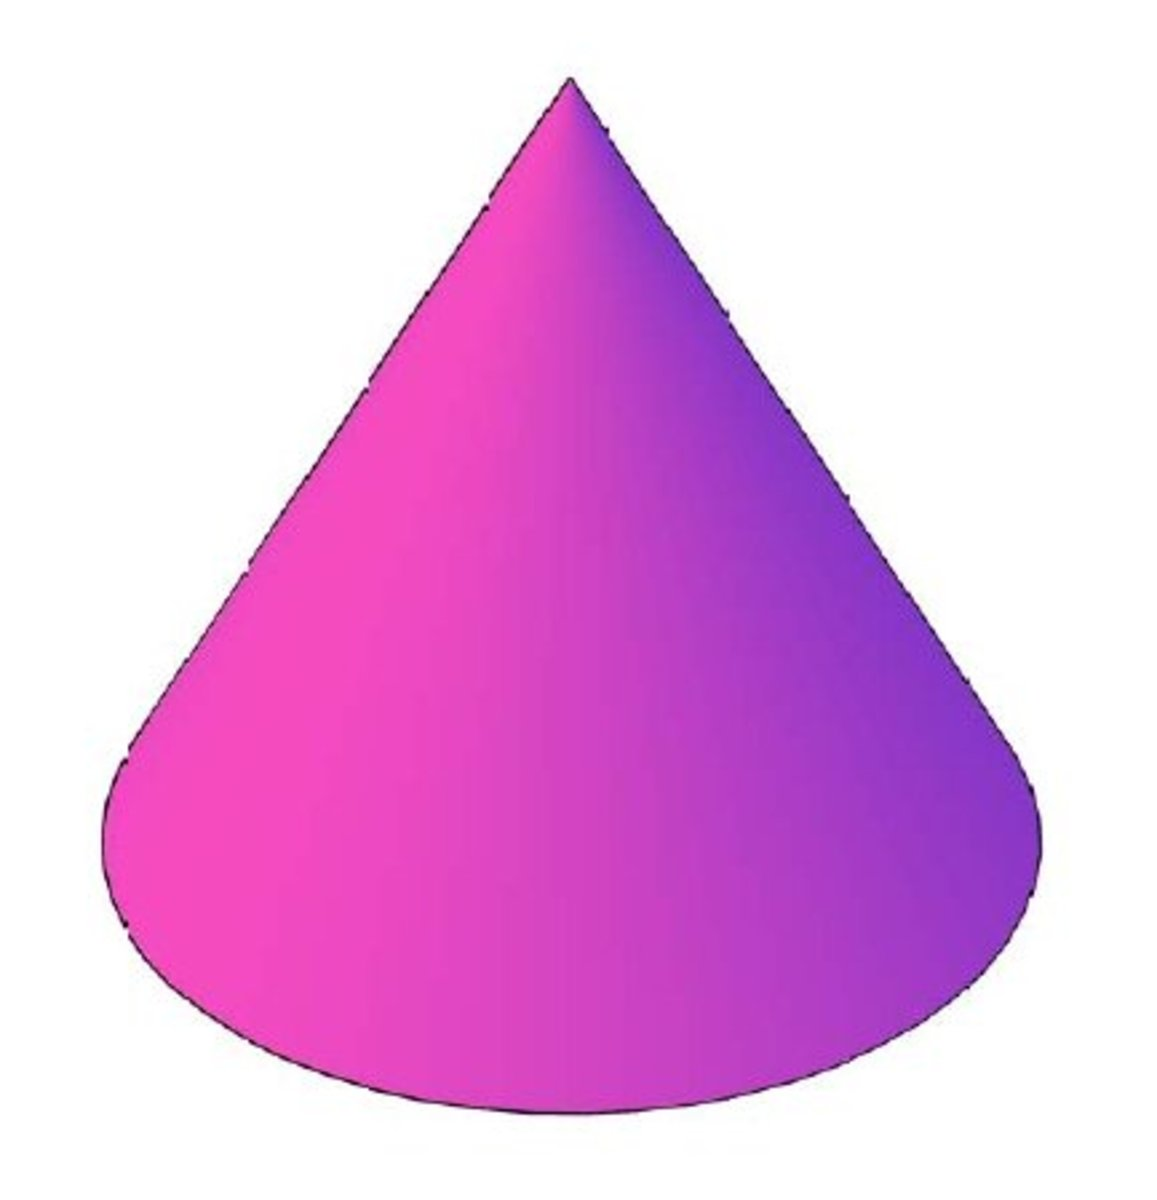 How To Develop A Cone Cone Development Owlcation